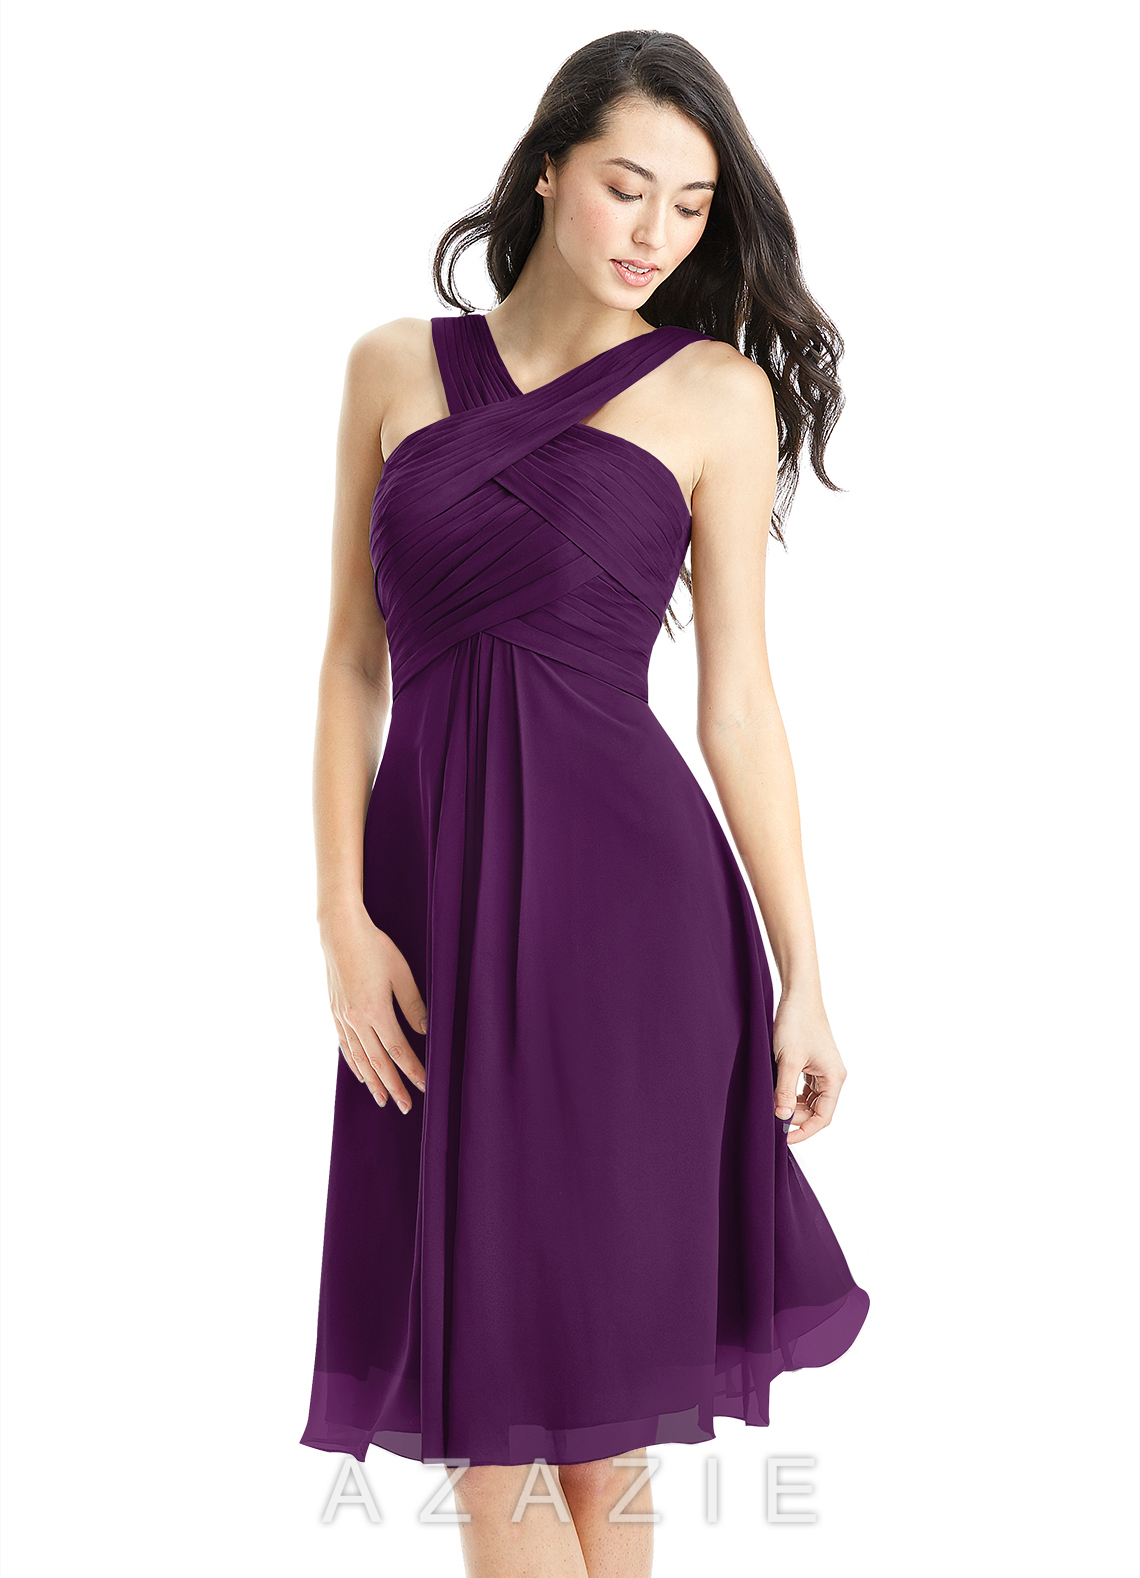 Azazie Amani Bridesmaid Dress | Azazie